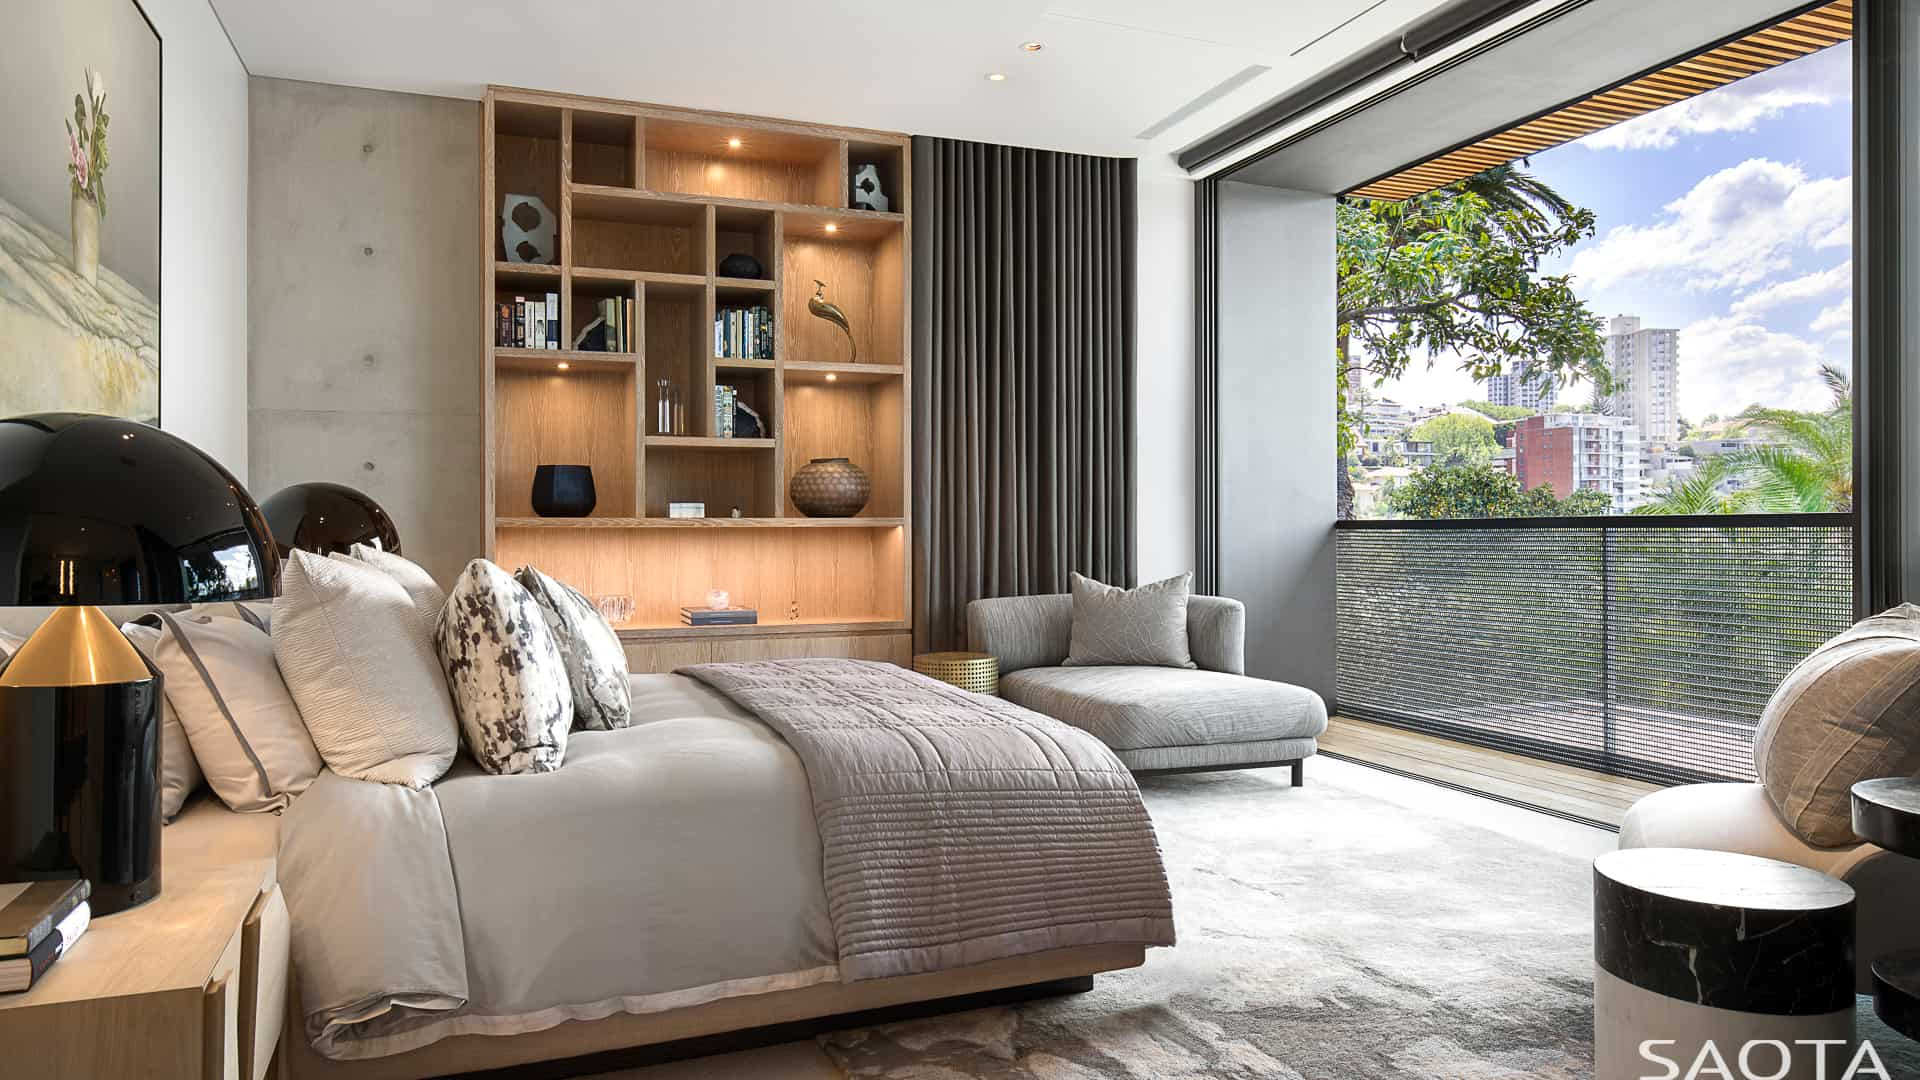 Airy primary bedroom features built-in wooden shelves and black railings. It includes a gray bed matching the lounge chair that's lighted with black table lamps.